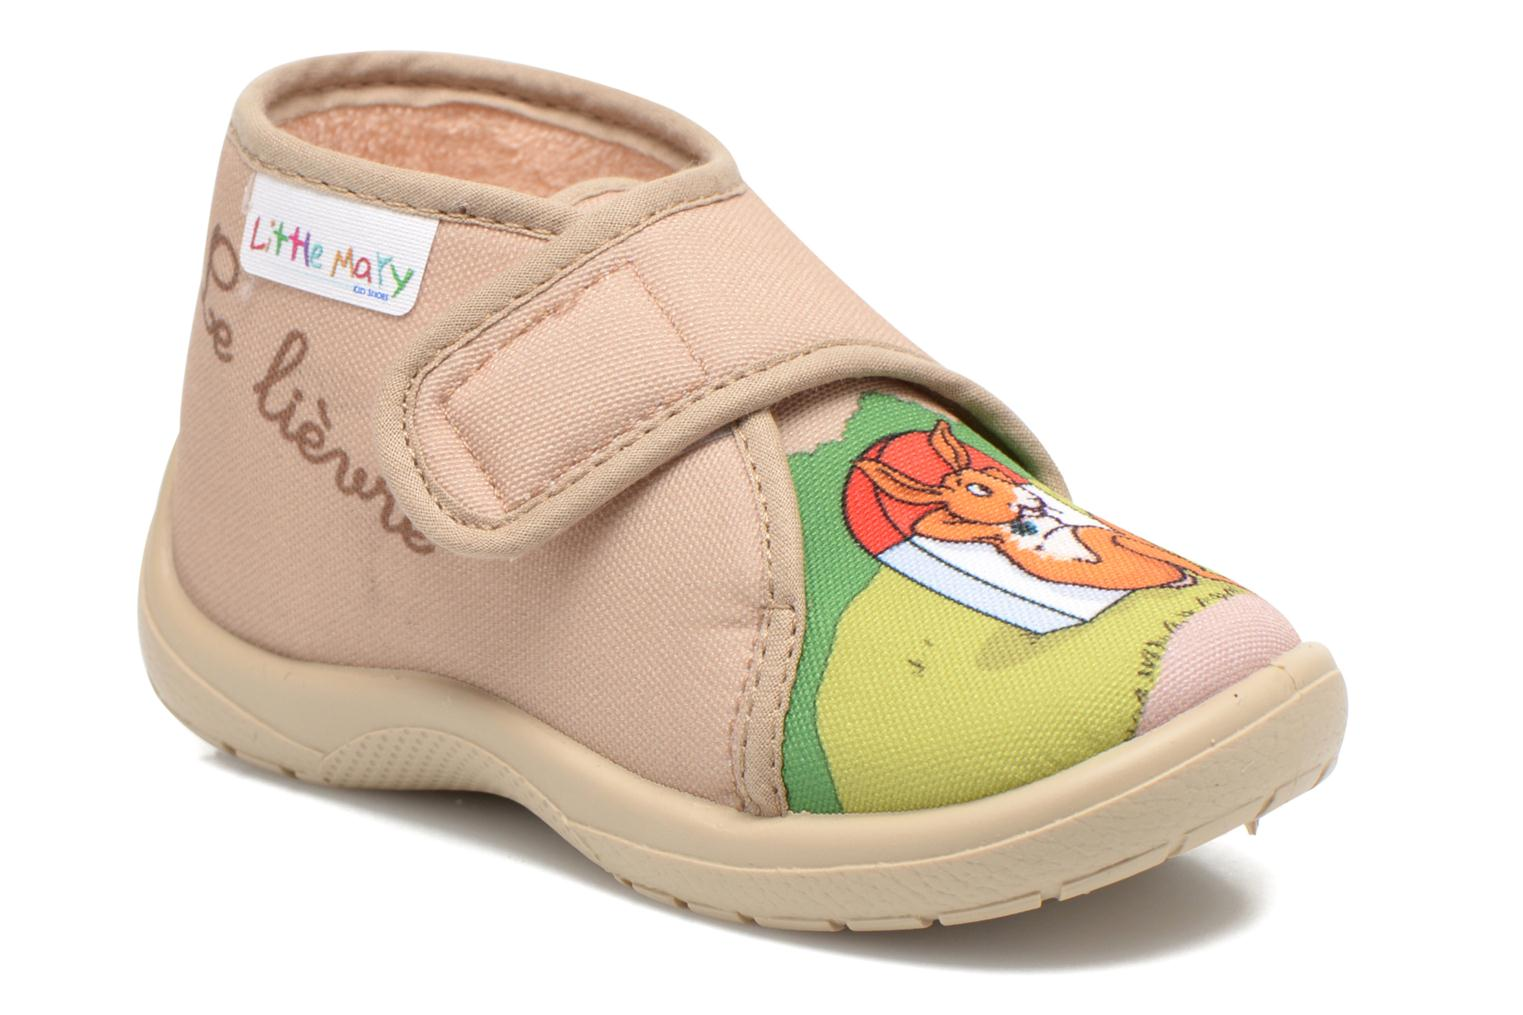 Pantuflas Little Mary Vtortue Beige vista de detalle / par